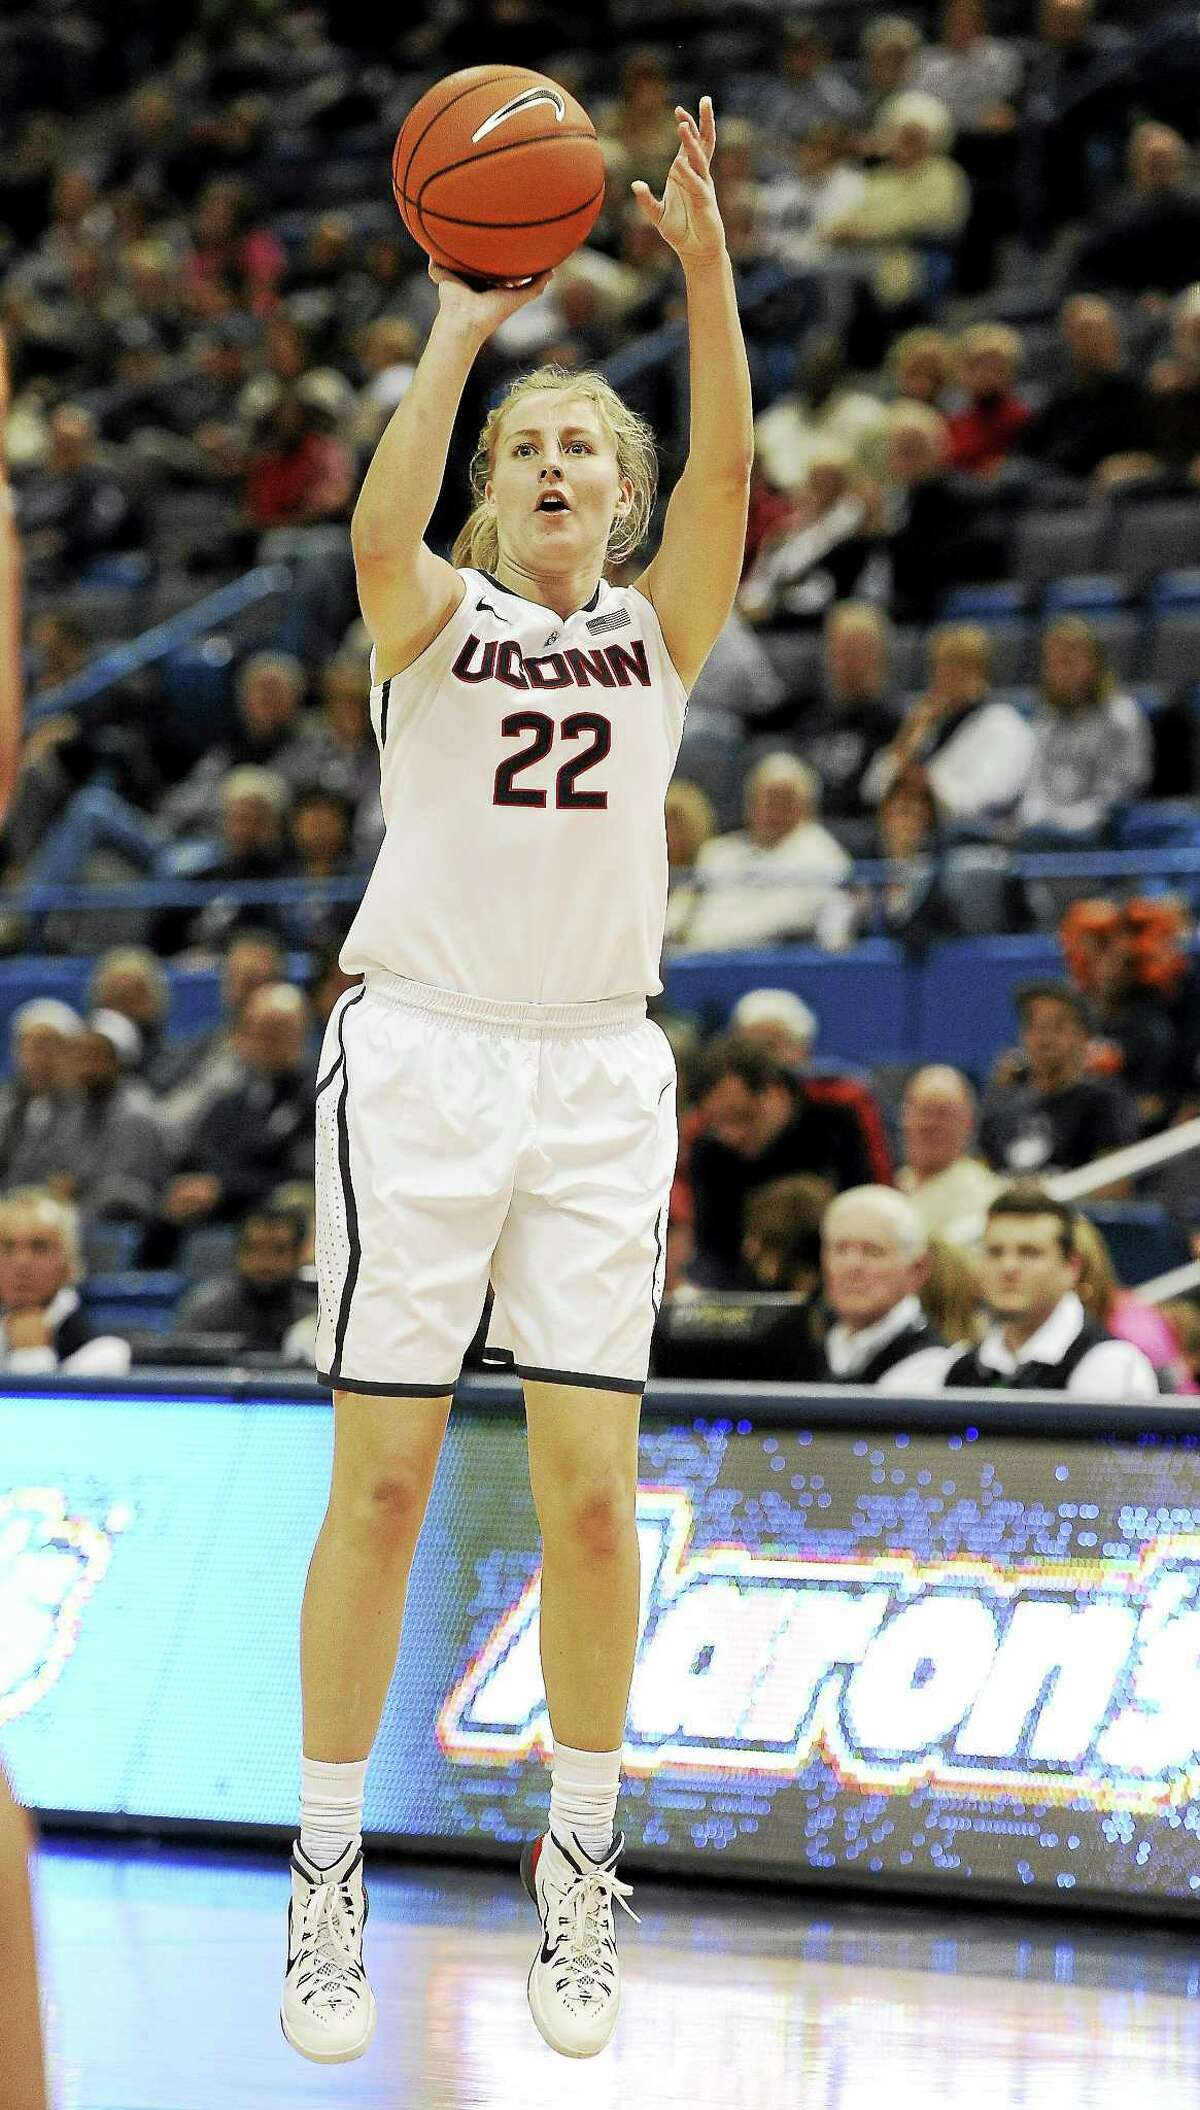 UConn's Courtney Ekmark shoots during the first half of a Nov. 9 game.